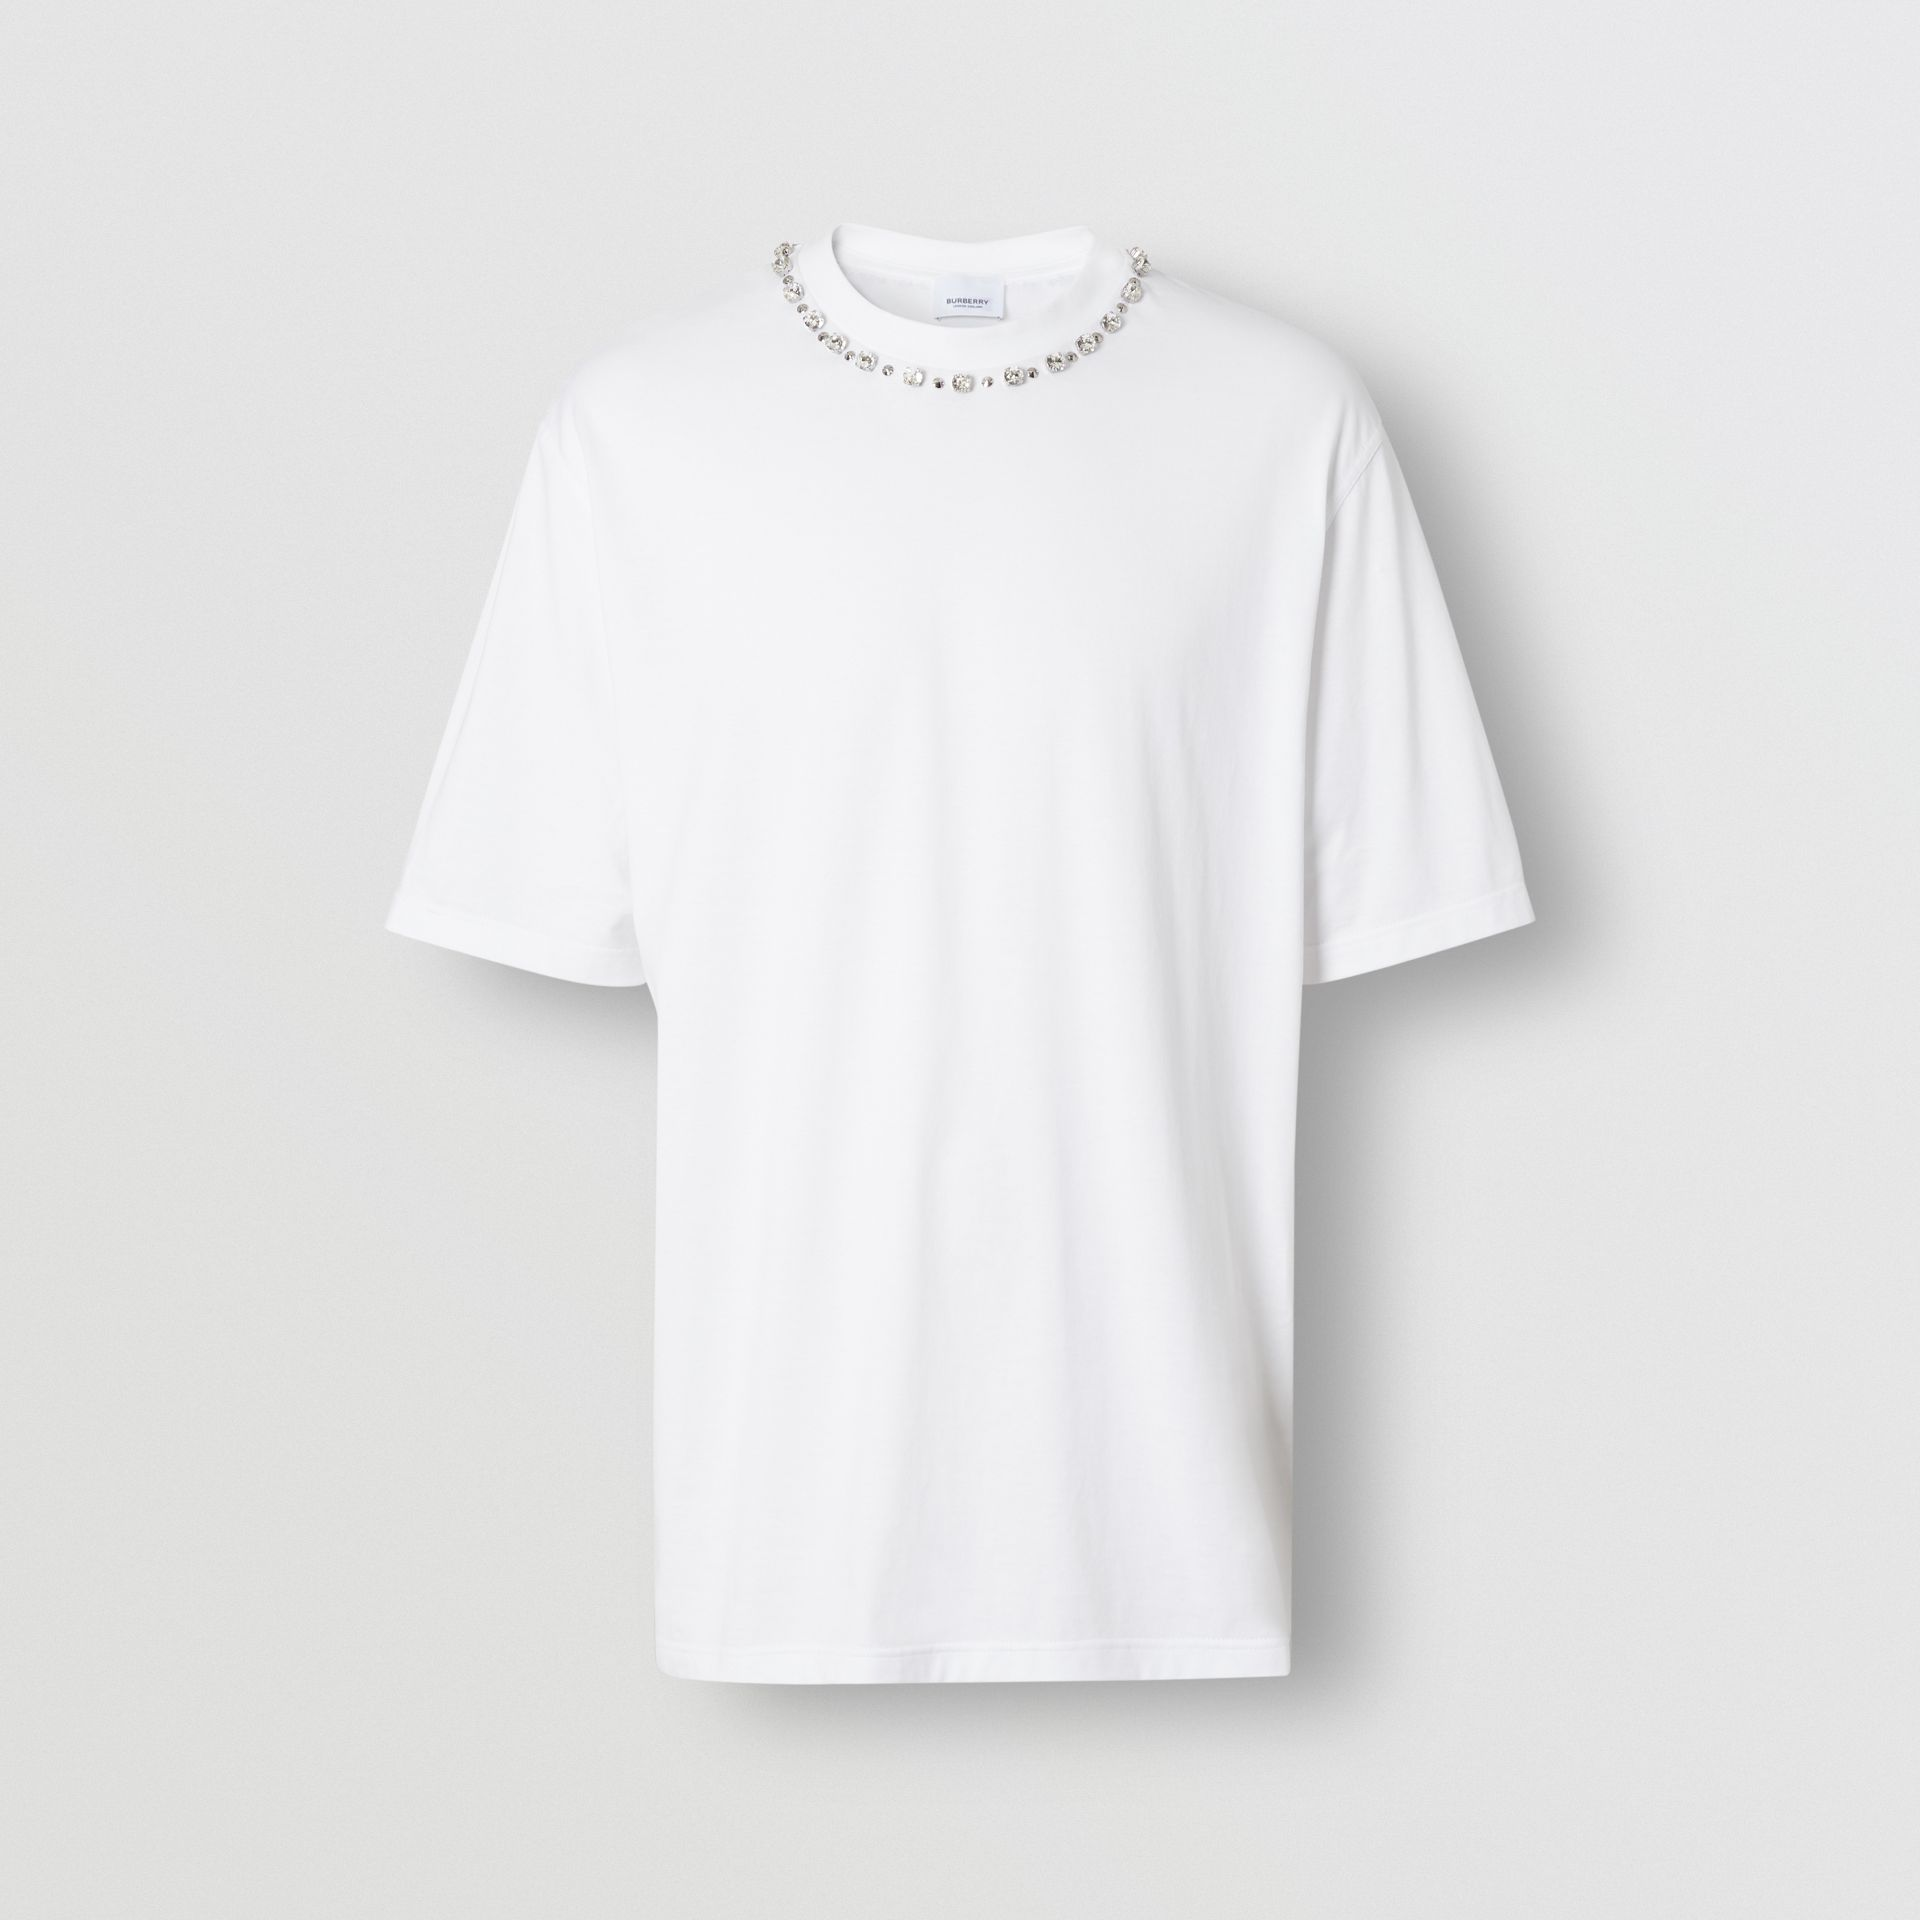 Embellished Cotton Oversized T-shirt in White - Men | Burberry United States - gallery image 3